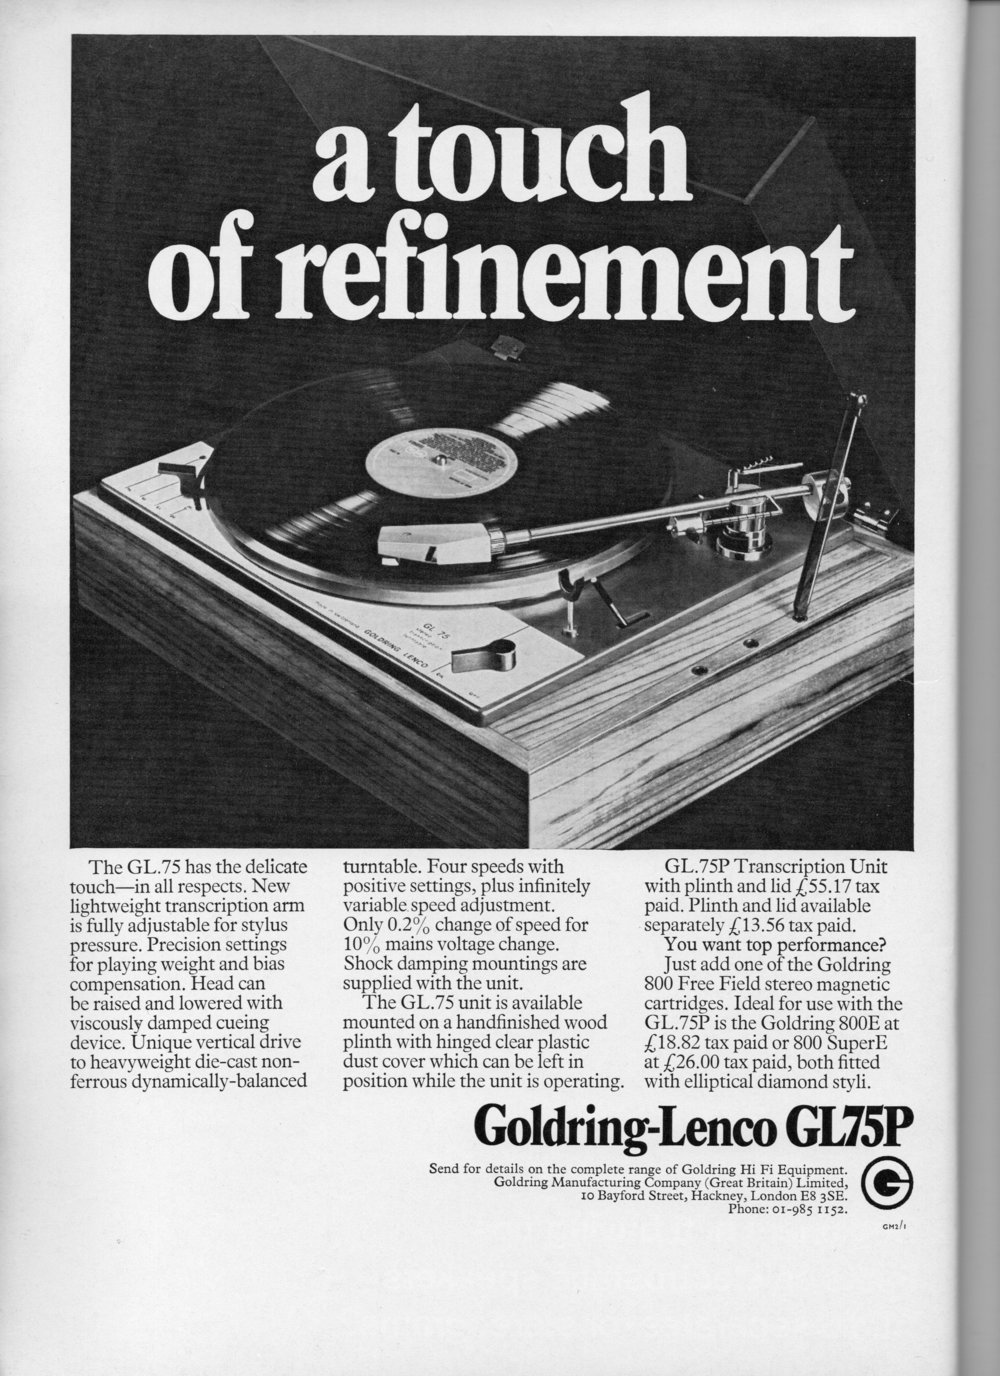 Goldring-Lenco GL75P Advert 1971.jpg